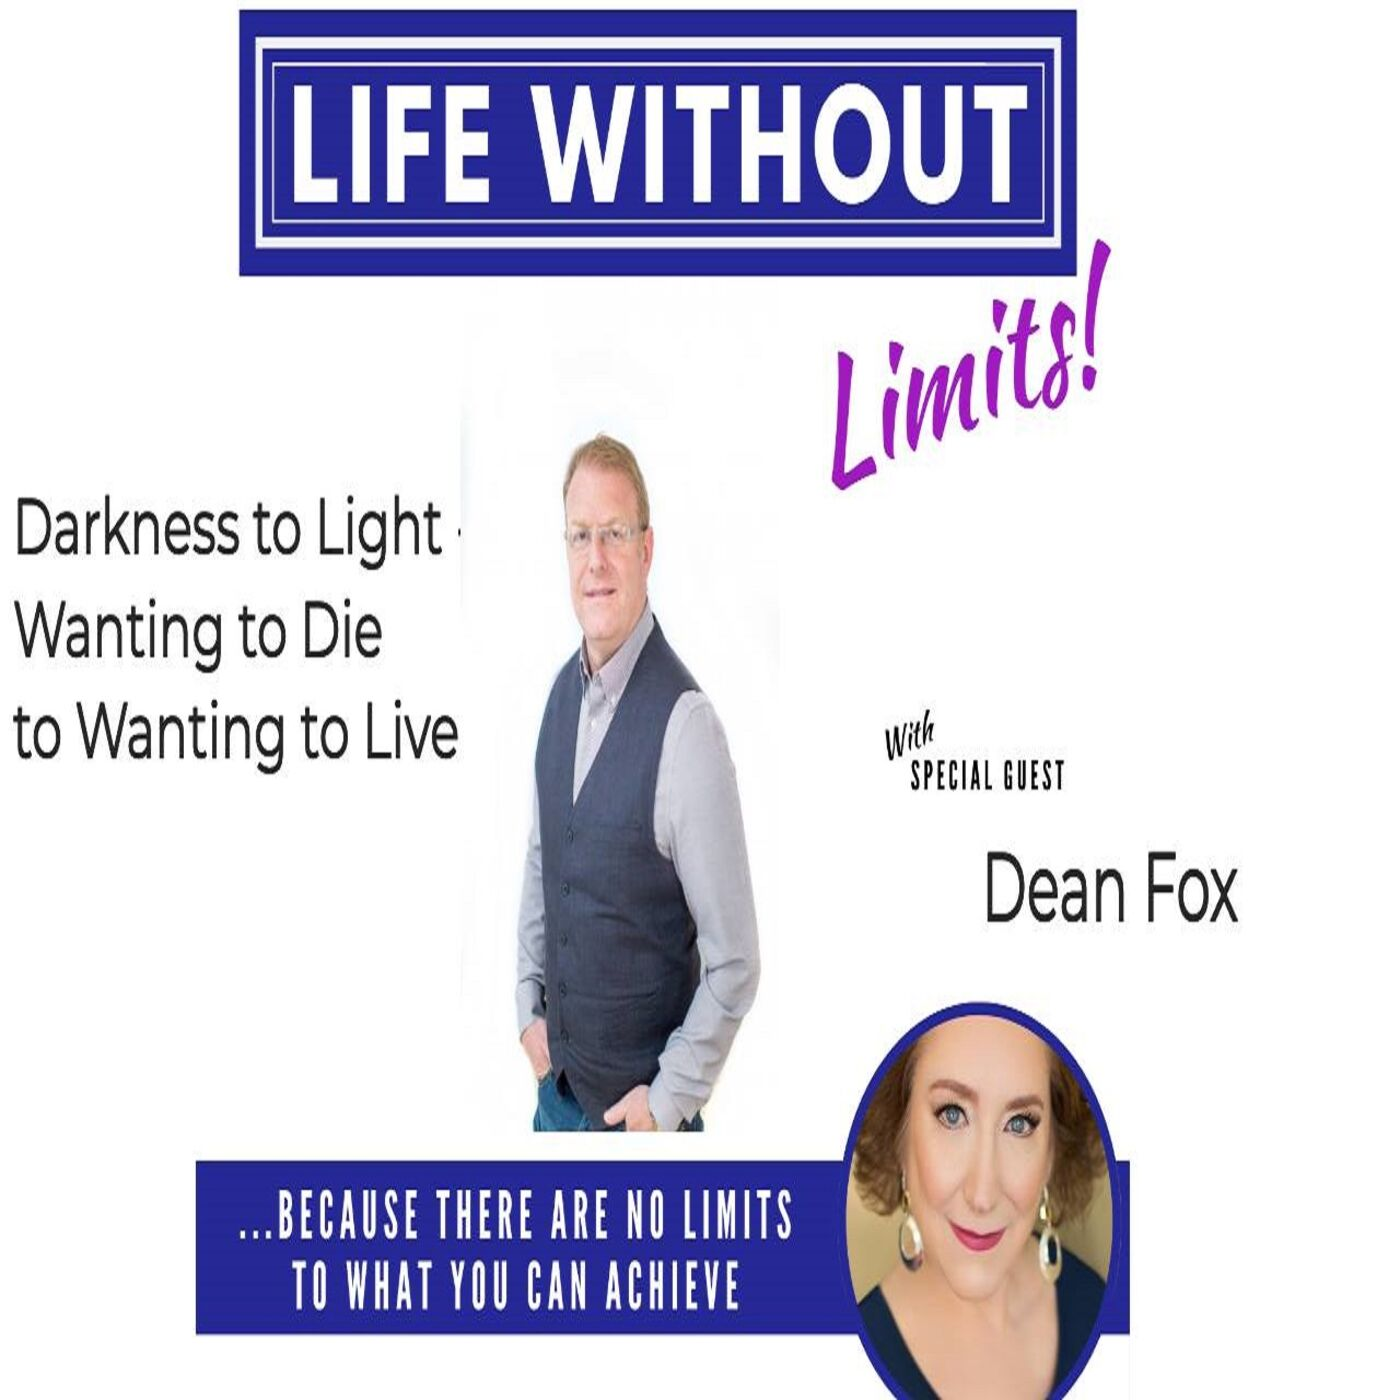 Darkness to Light - From Wanting to Die to Wanting to Live